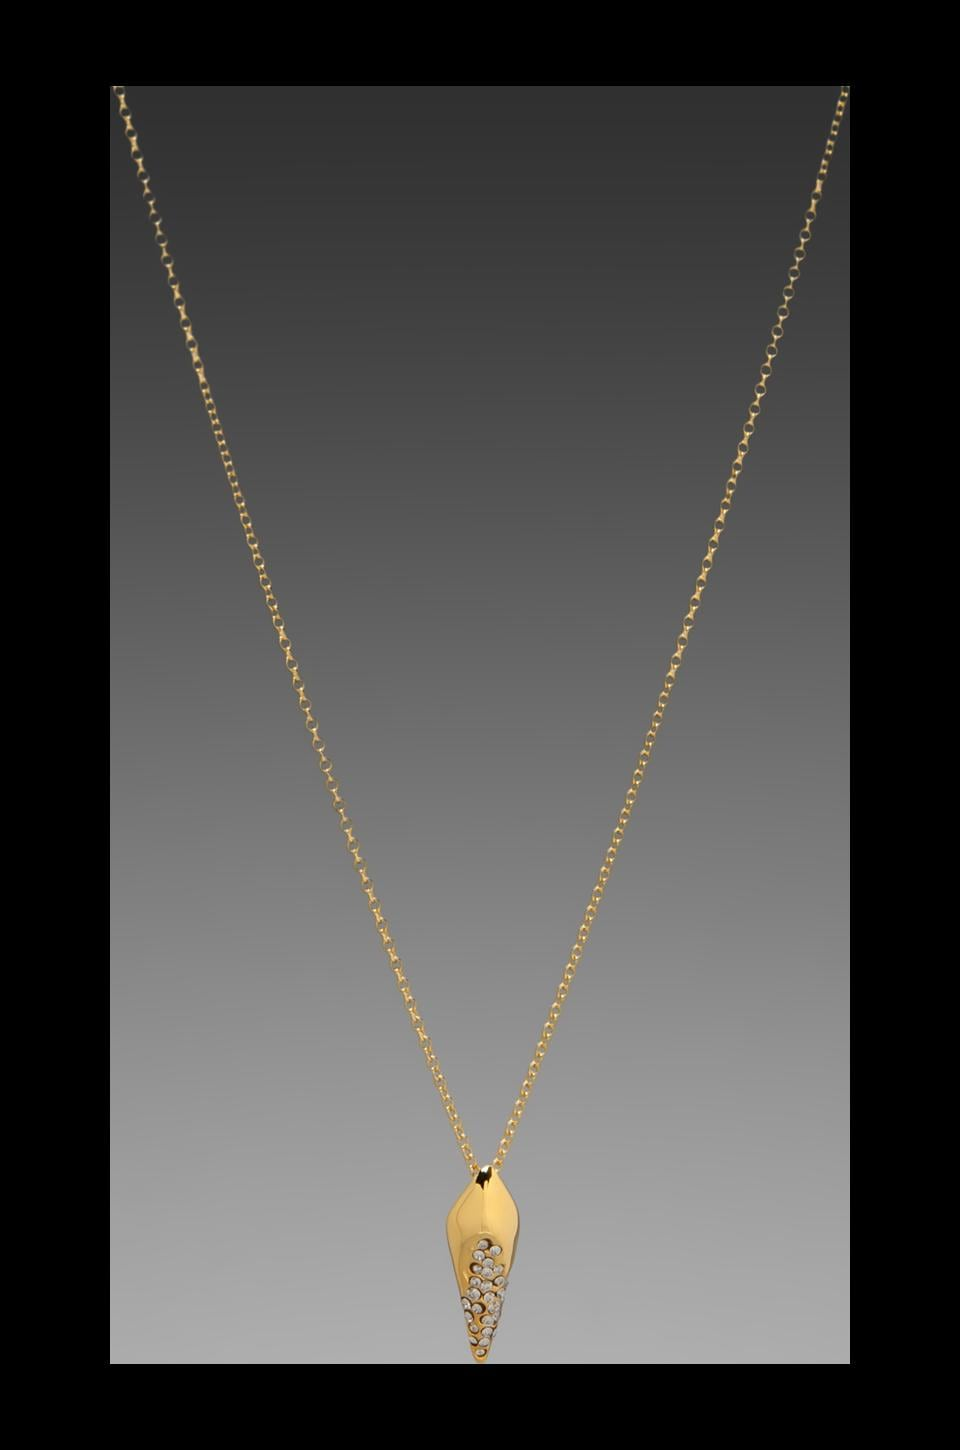 Alexis Bittar New Wave Gold Small Pave Kite Pendant